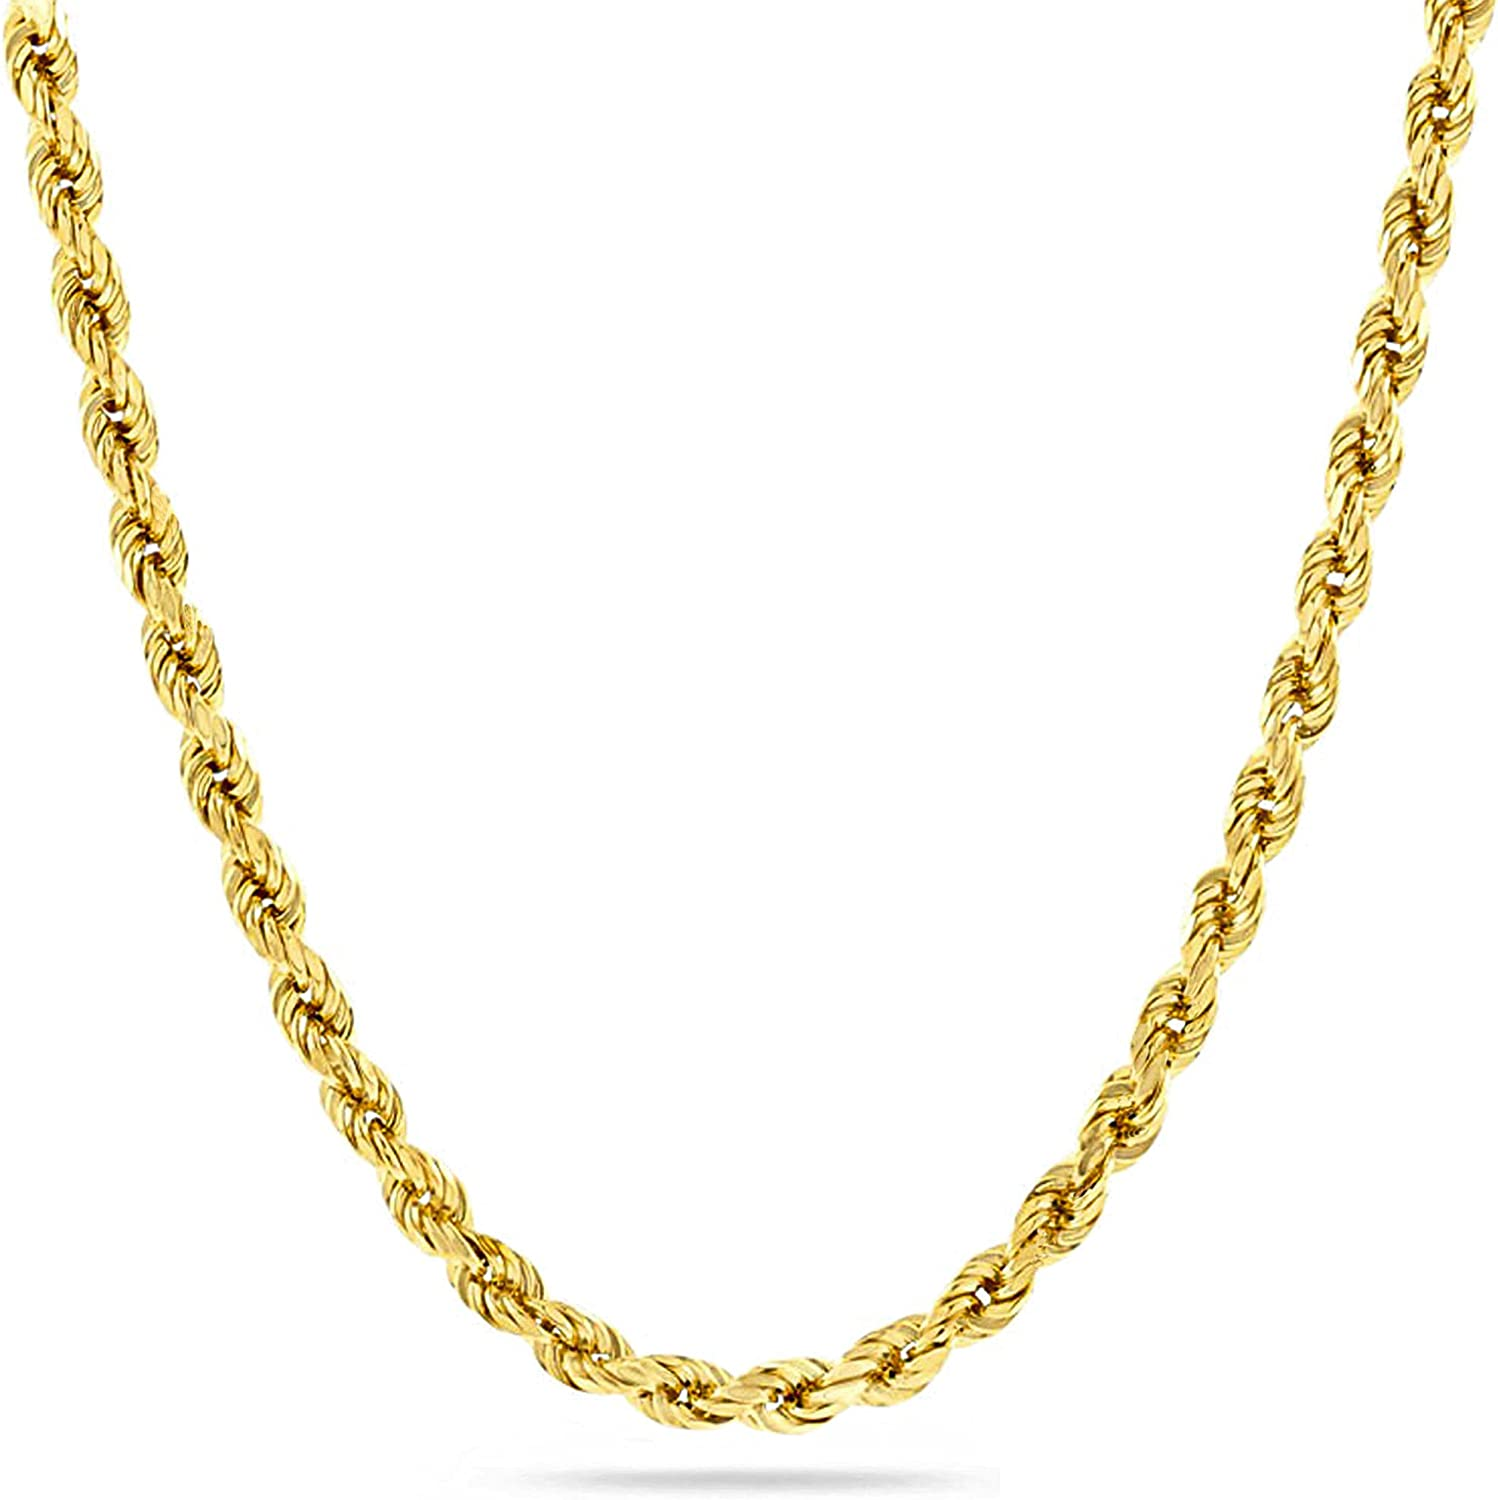 Abaya Jewelers Unisex Diamond Cut Twist Rope Rope Chain Necklace   14k Over Stainless Steel   Solid Feel